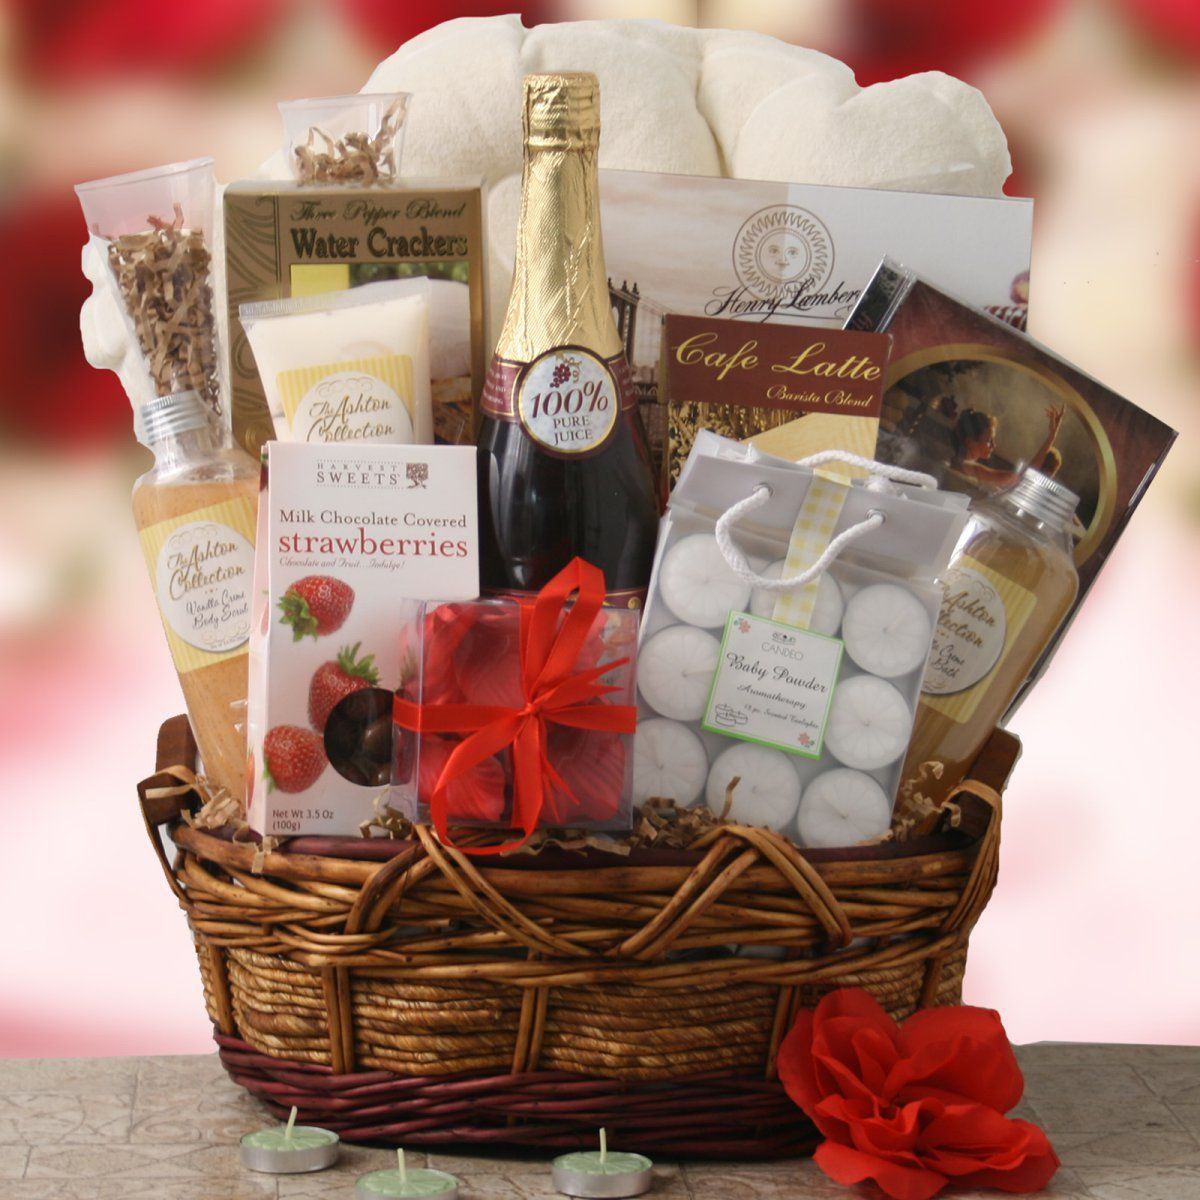 Everlasting Love Gift Basket Www Giftbaskets Com Wedding Gift Baskets Honeymoon Gift Baskets Honeymoon Gifts